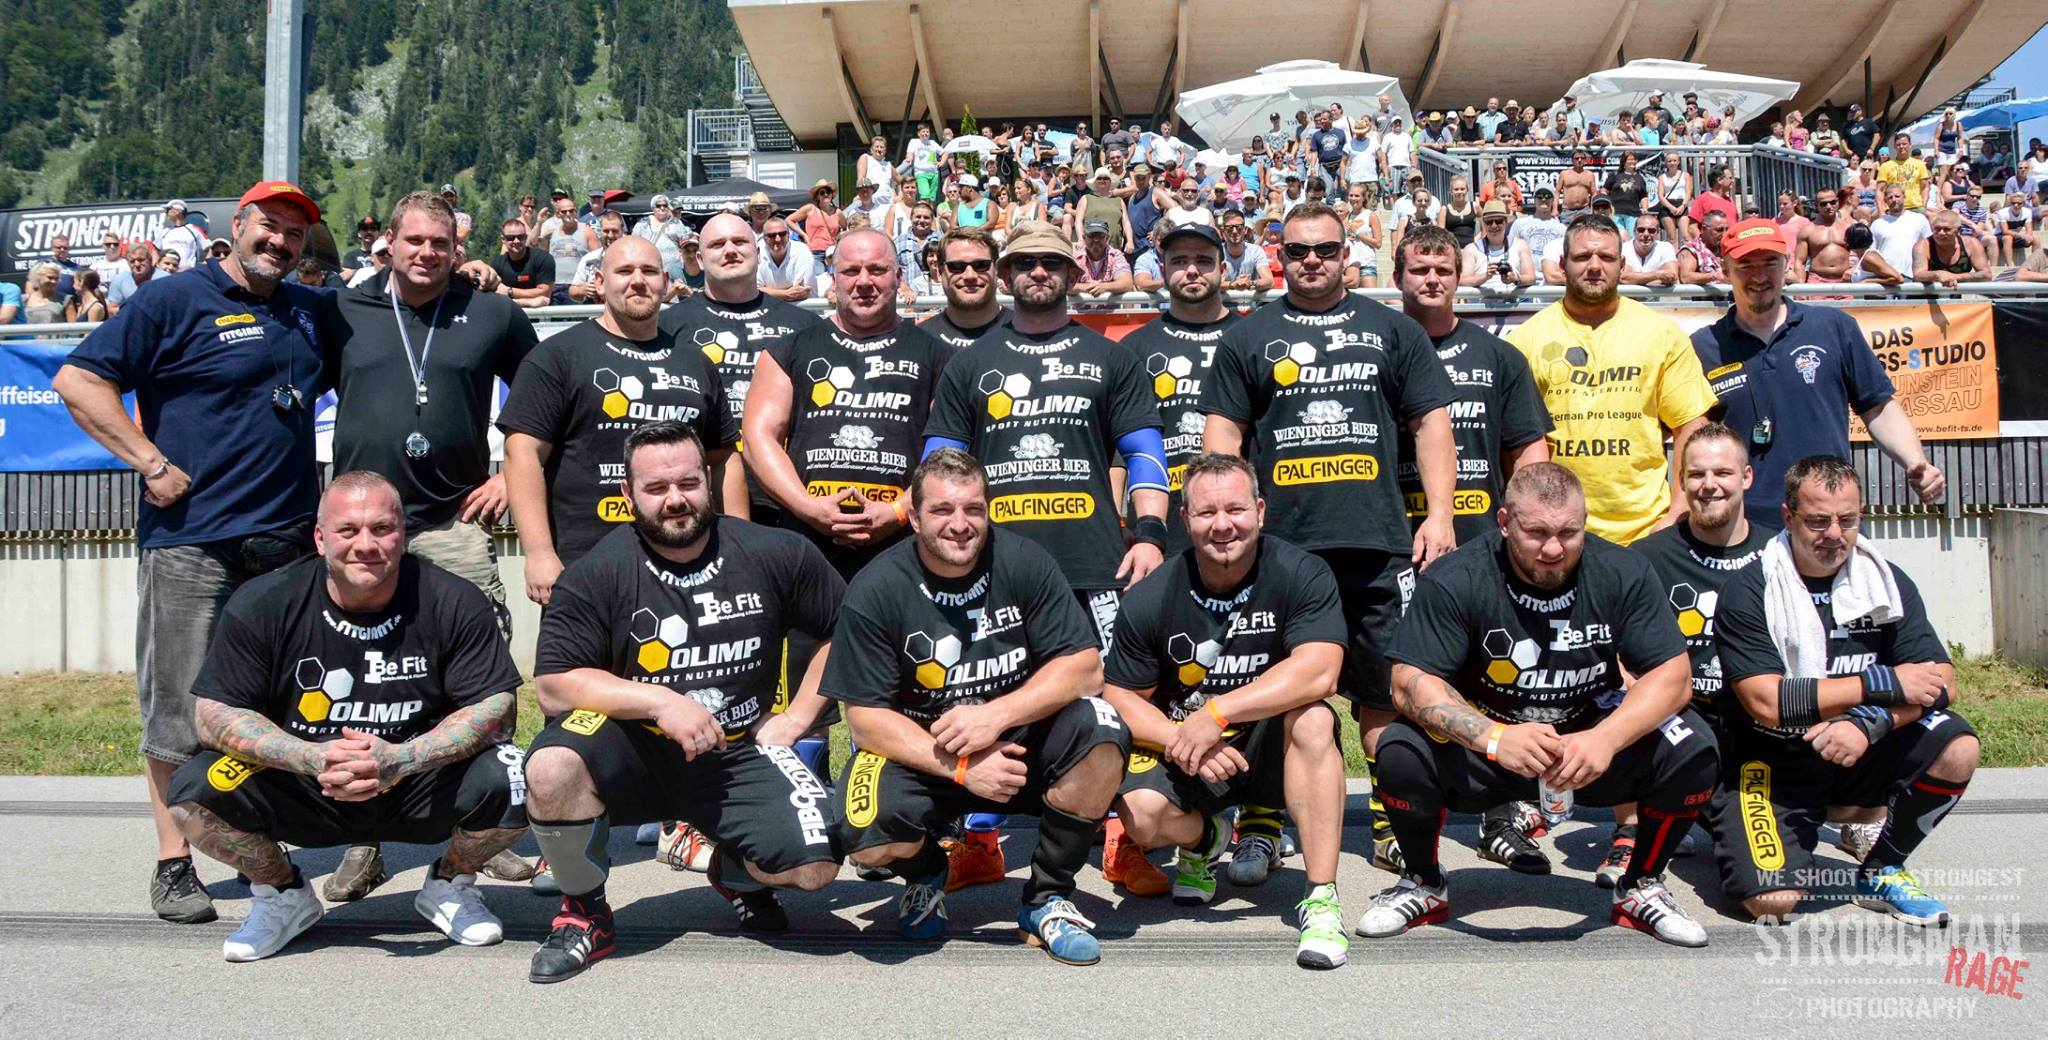 gruppe_ruhpolding15